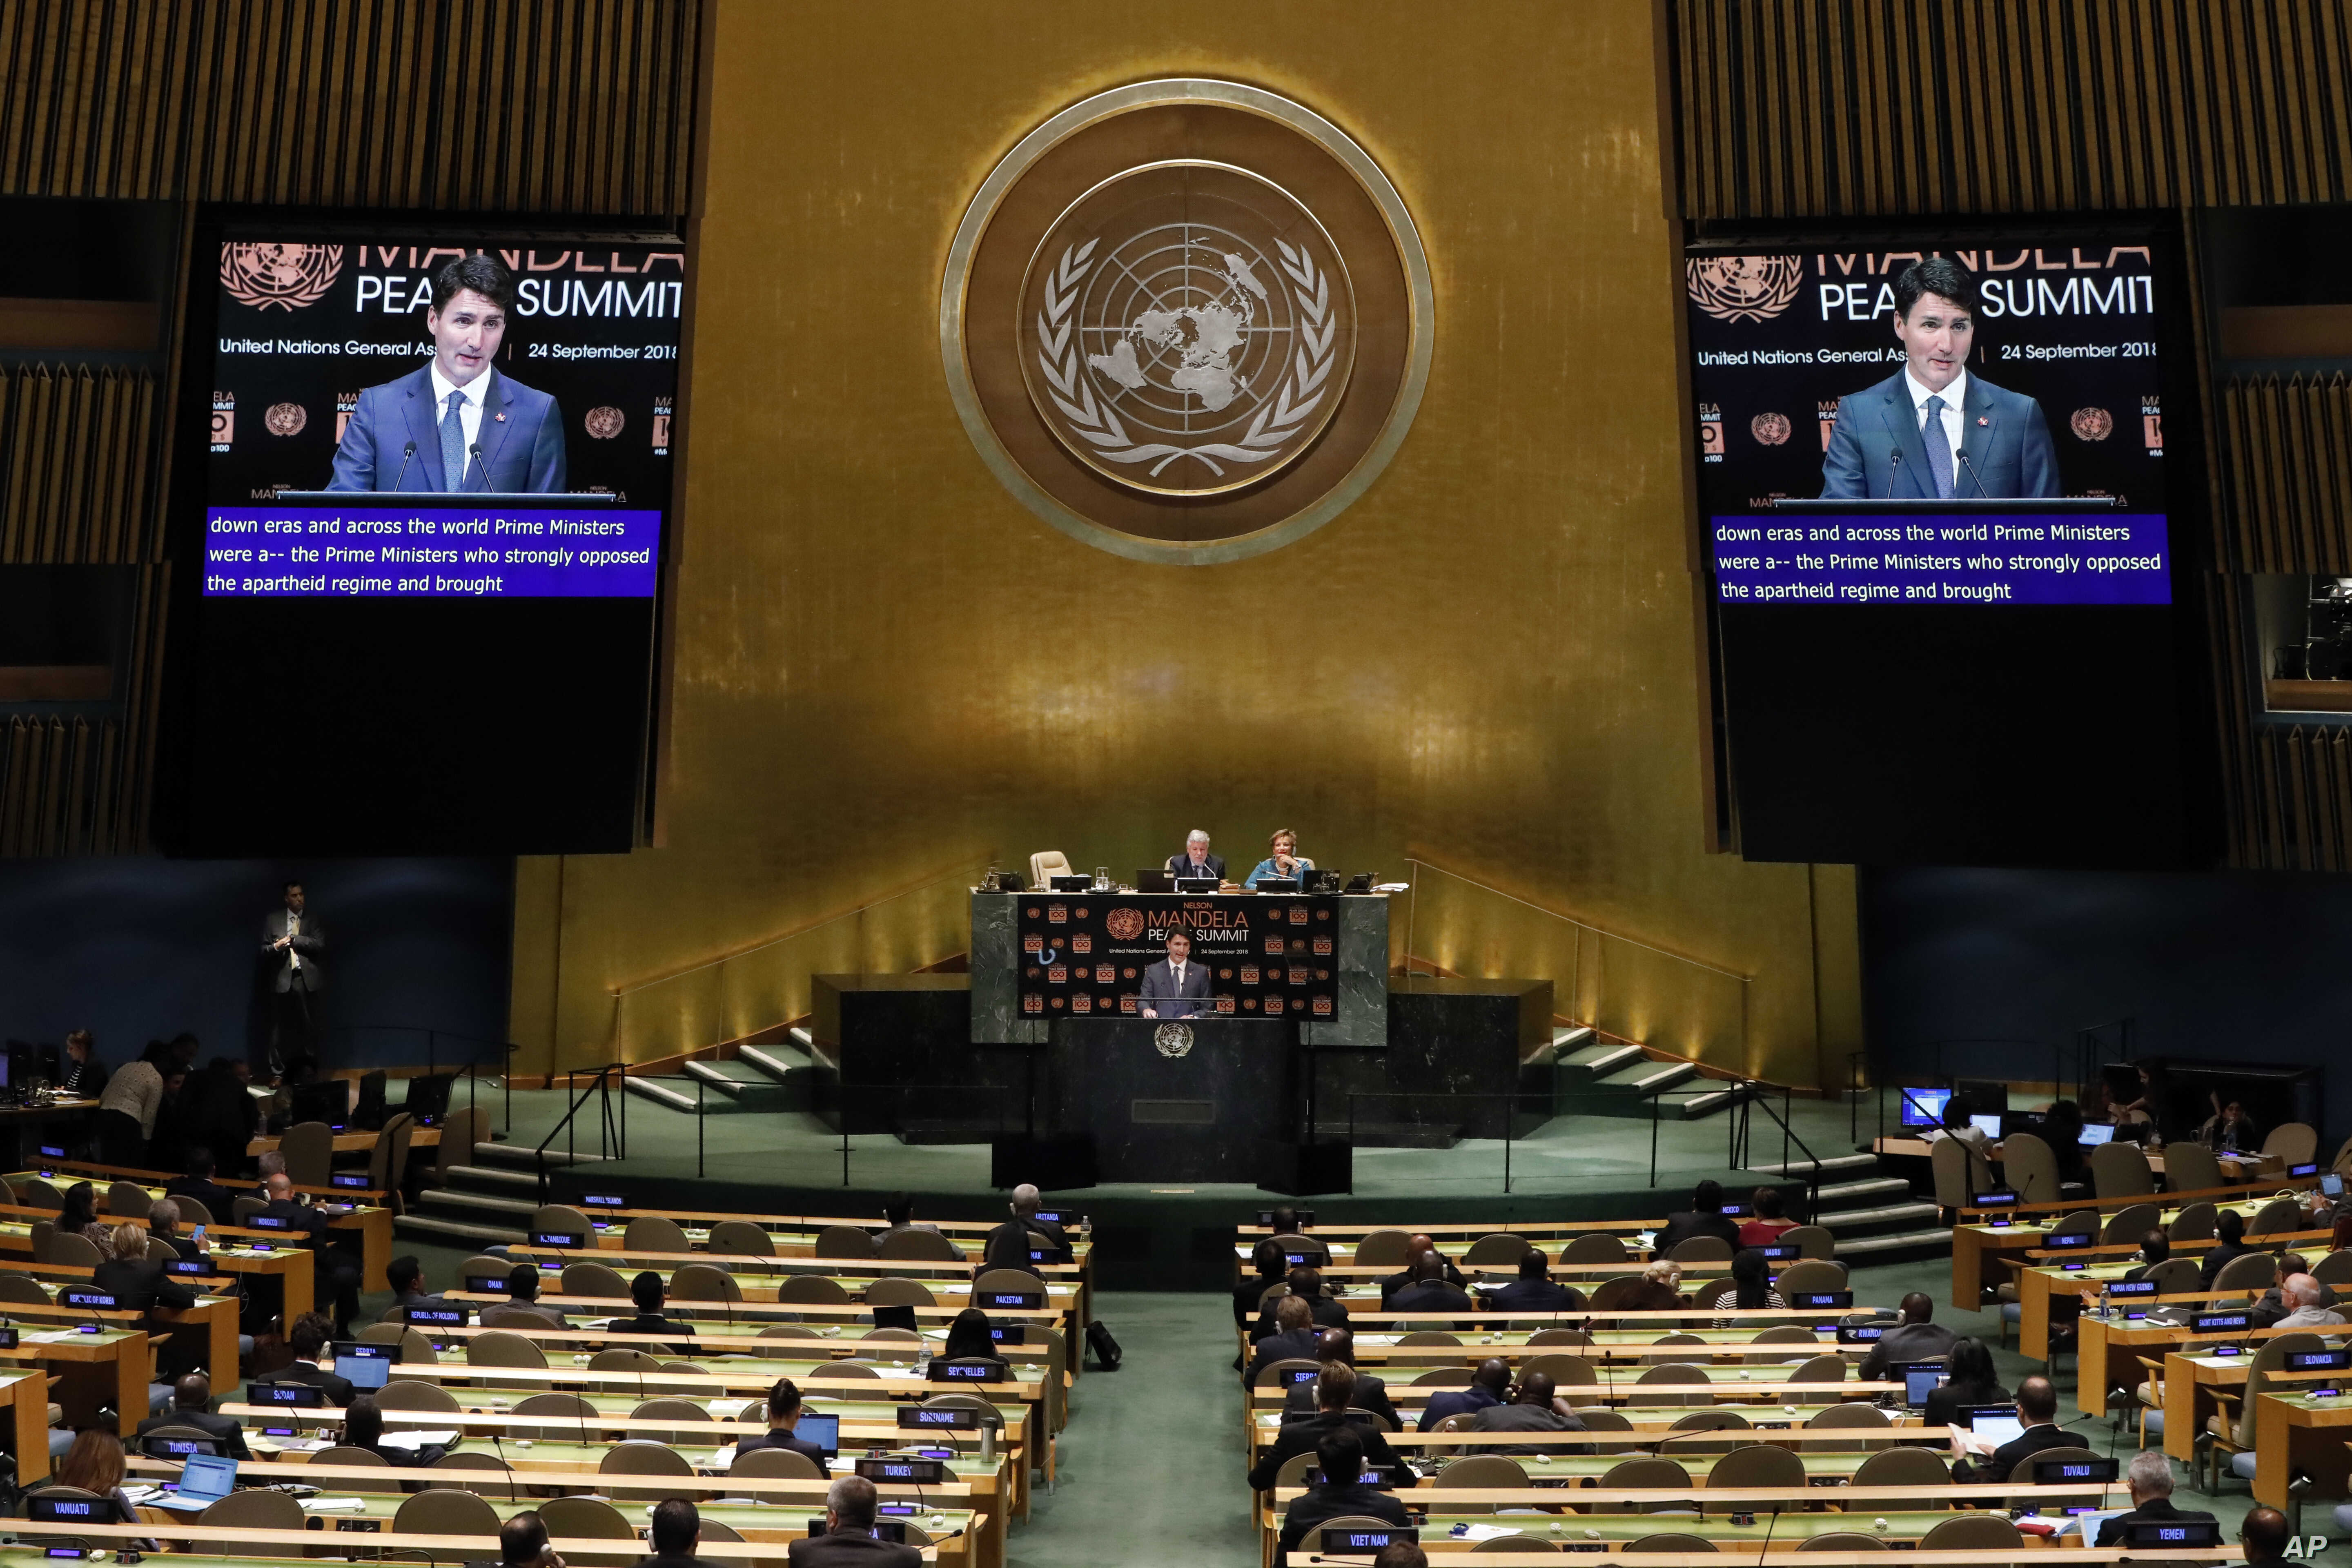 Prime Minister of Canada Justin Trudeau addresses the Nelson Mandela Peace Summit in the United Nations General Assembly, at U.N. headquarters, Sept. 24, 2018.